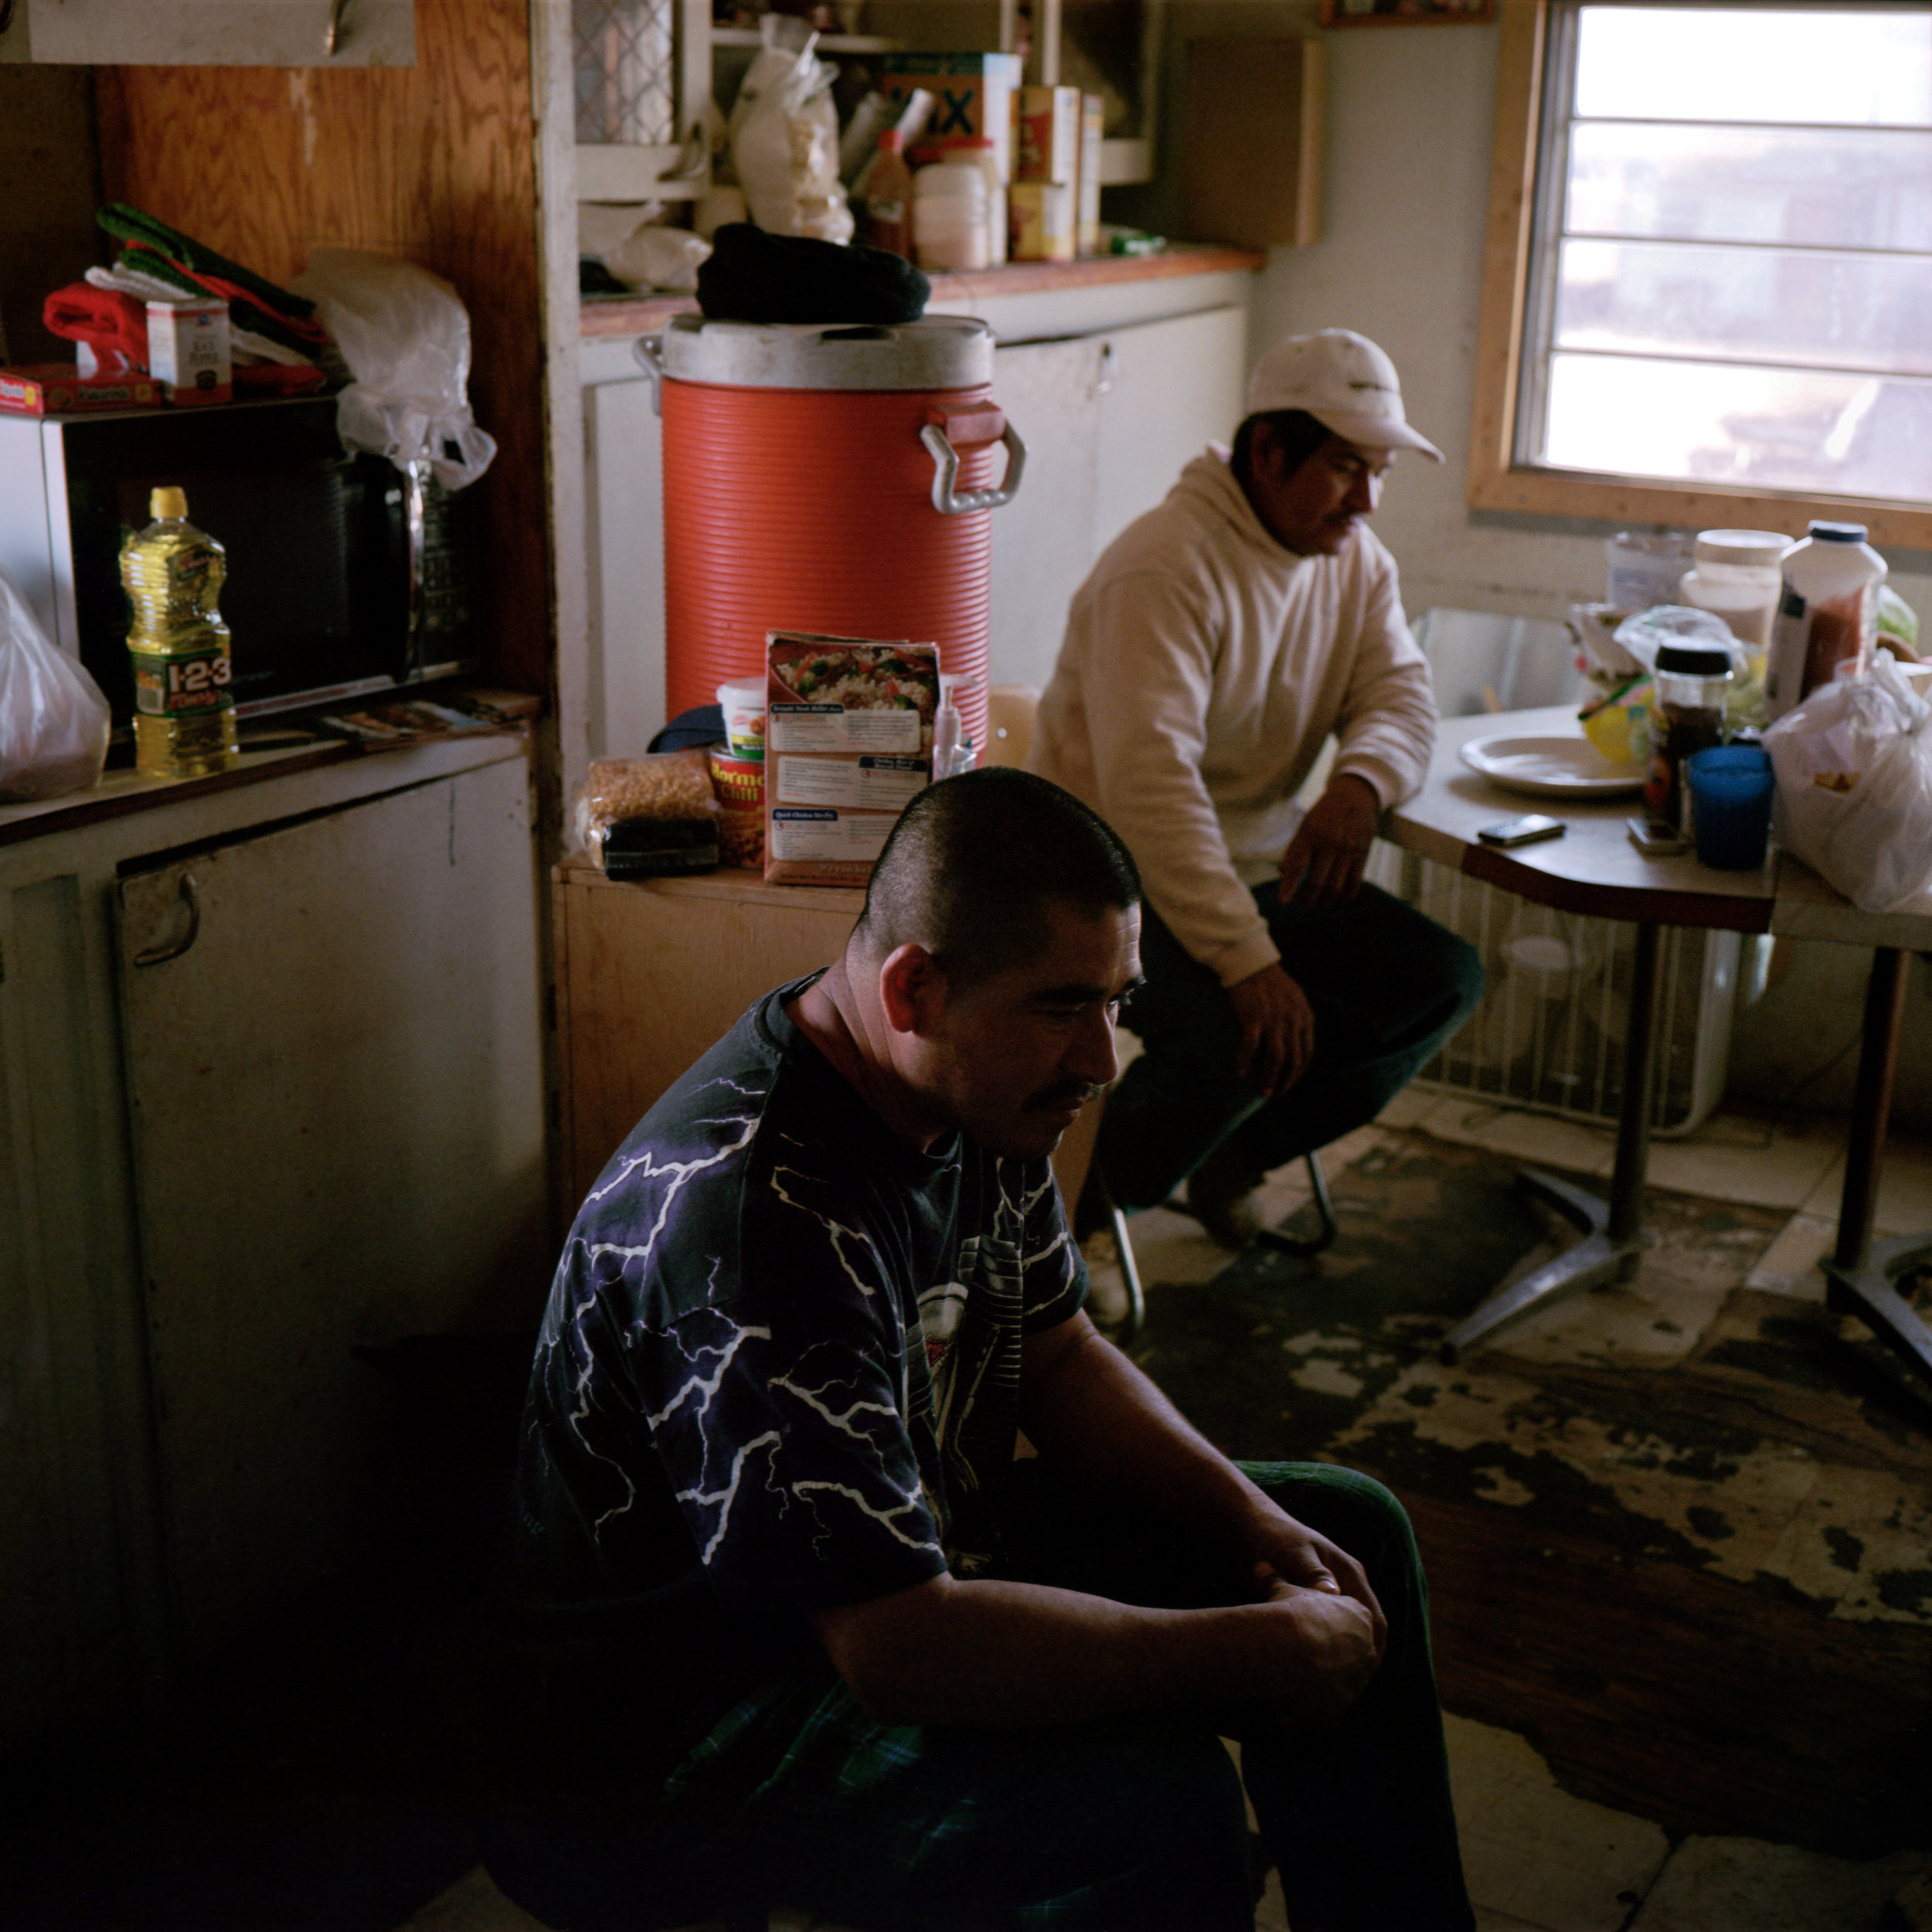 Isidro Alcudia, front, and his brother Epifanio wait in the early morning for a call offering them work as day-laborers in their trailer in Pajarito Mesa, New Mexico, USA on Feb. 17, 2011. The two work primarily in construction, but fewer people are building as a result of the global recession. They were not offered work on this day.